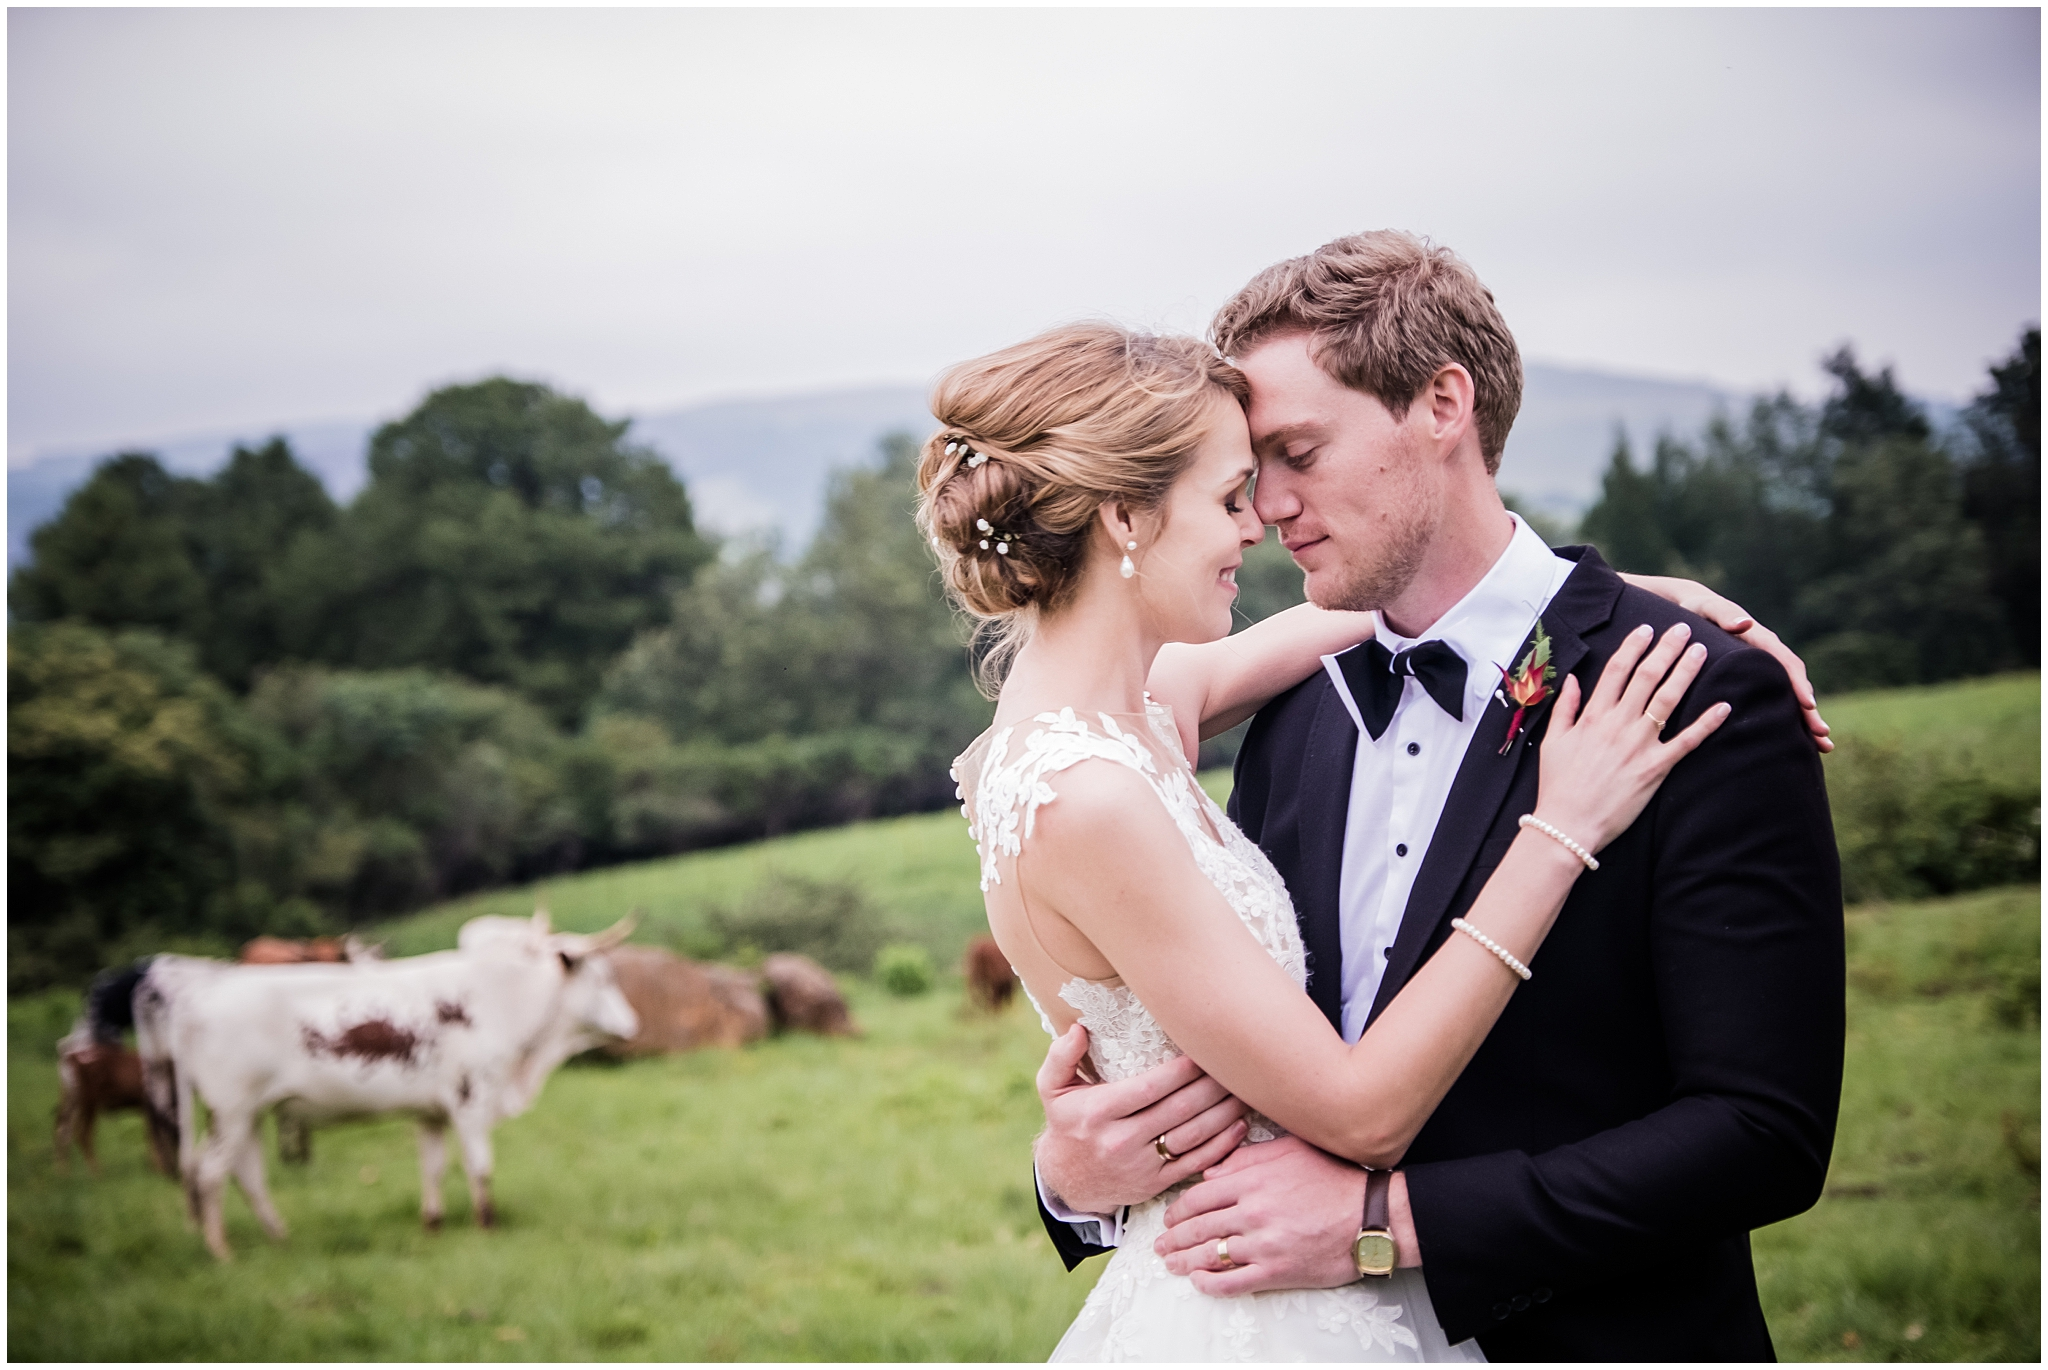 Louis & Katherine's beautiful Midlands wedding